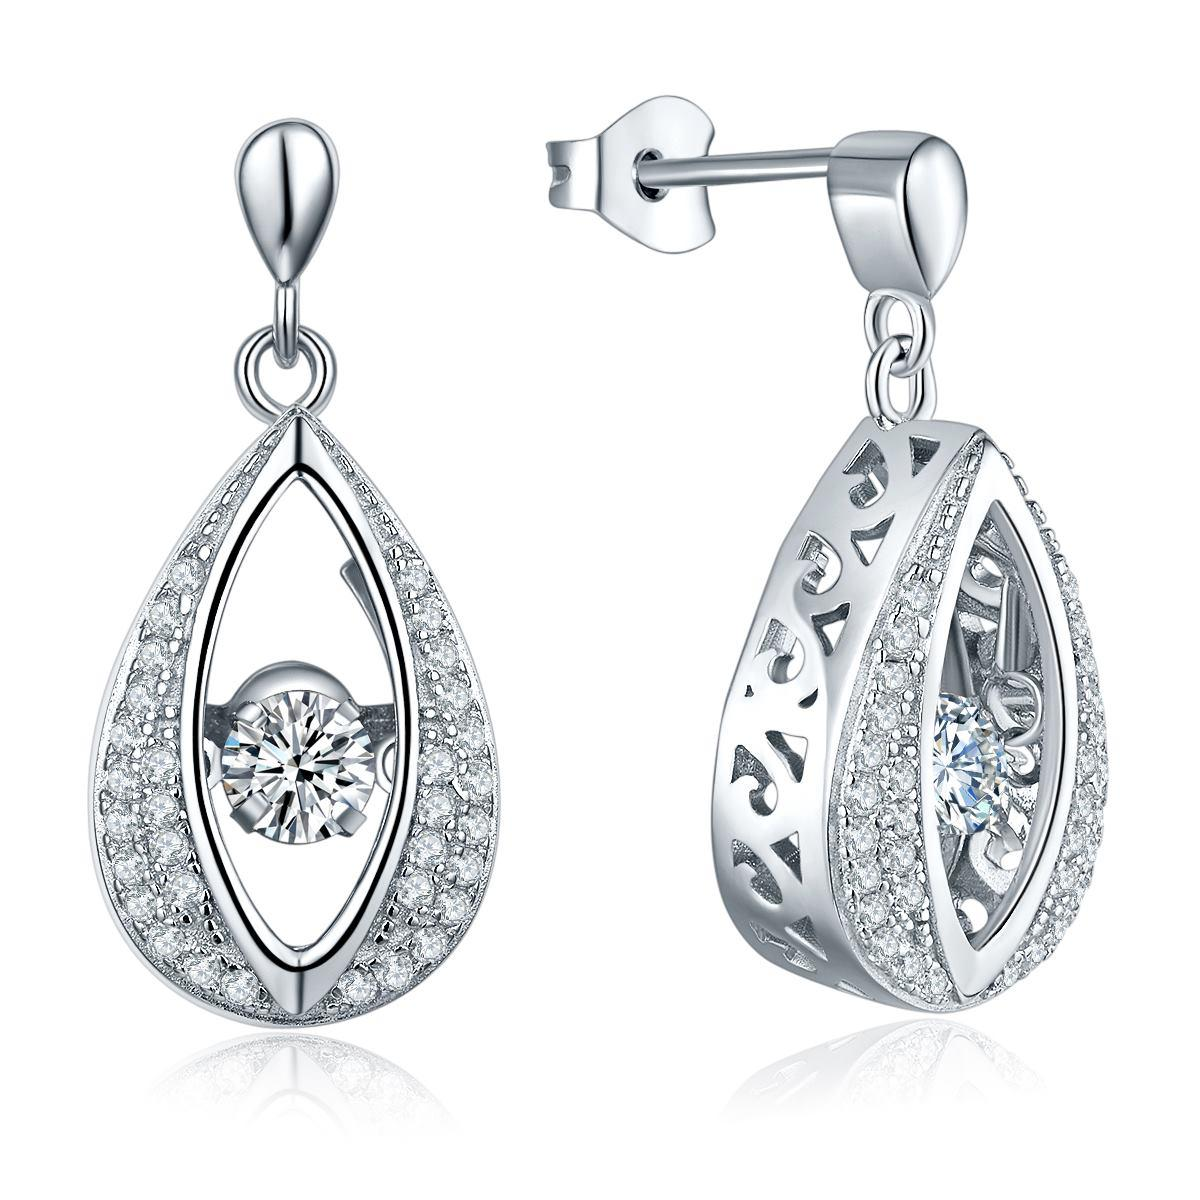 Dancing Stone Sterling Silver 925 Eye Shape Vintage Dangle Long Earrings  Fashion Jewelry Prong Rhodium Plated For For Women Gift De16310a From